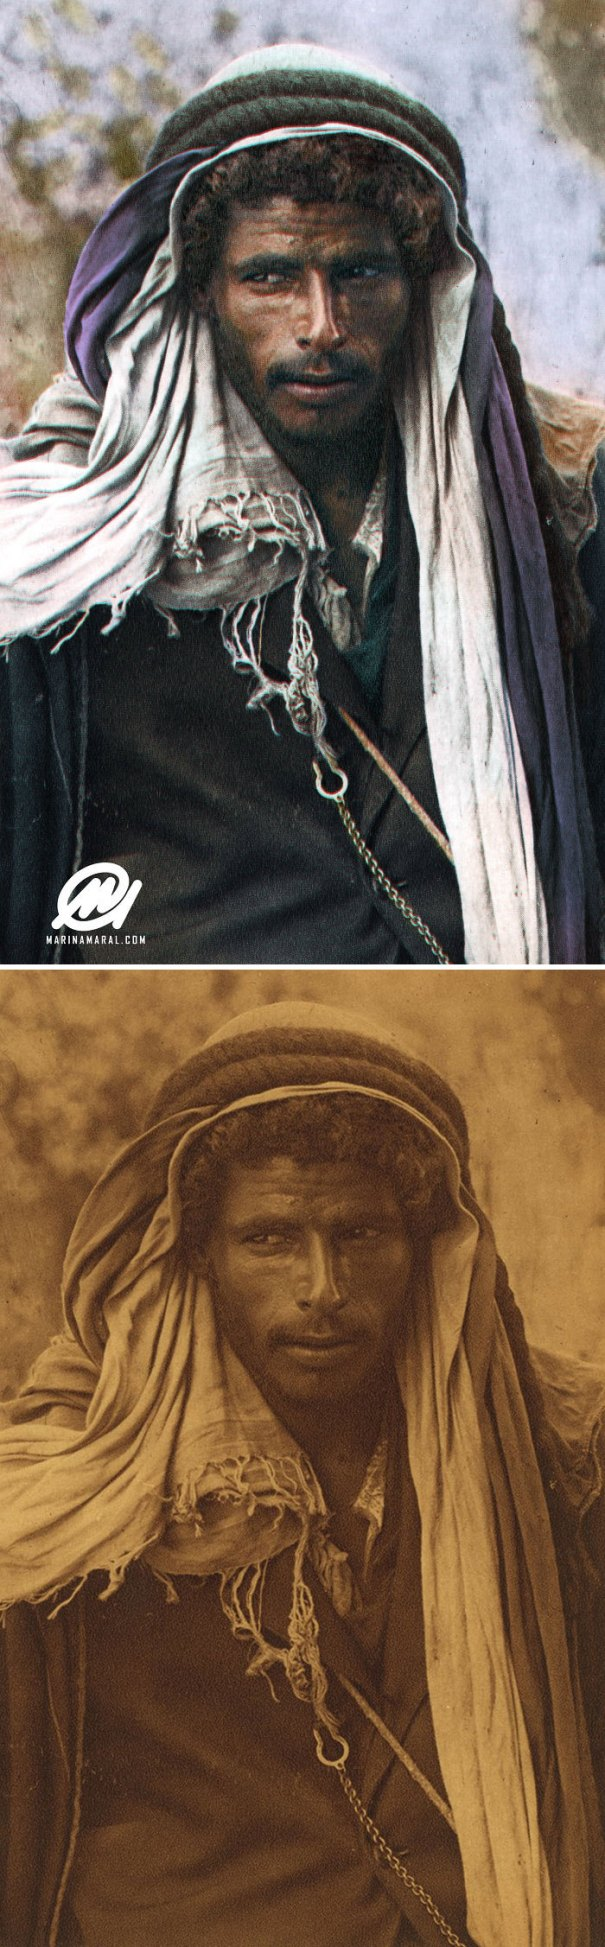 5b6d3b85daffe-colorized-historic-photos-marina-amaral-43-5b6adb5fd8c36__700 This Artist Colorizes Old Black & White Photos, And They Will Change The Way People Imagine History Photography Random